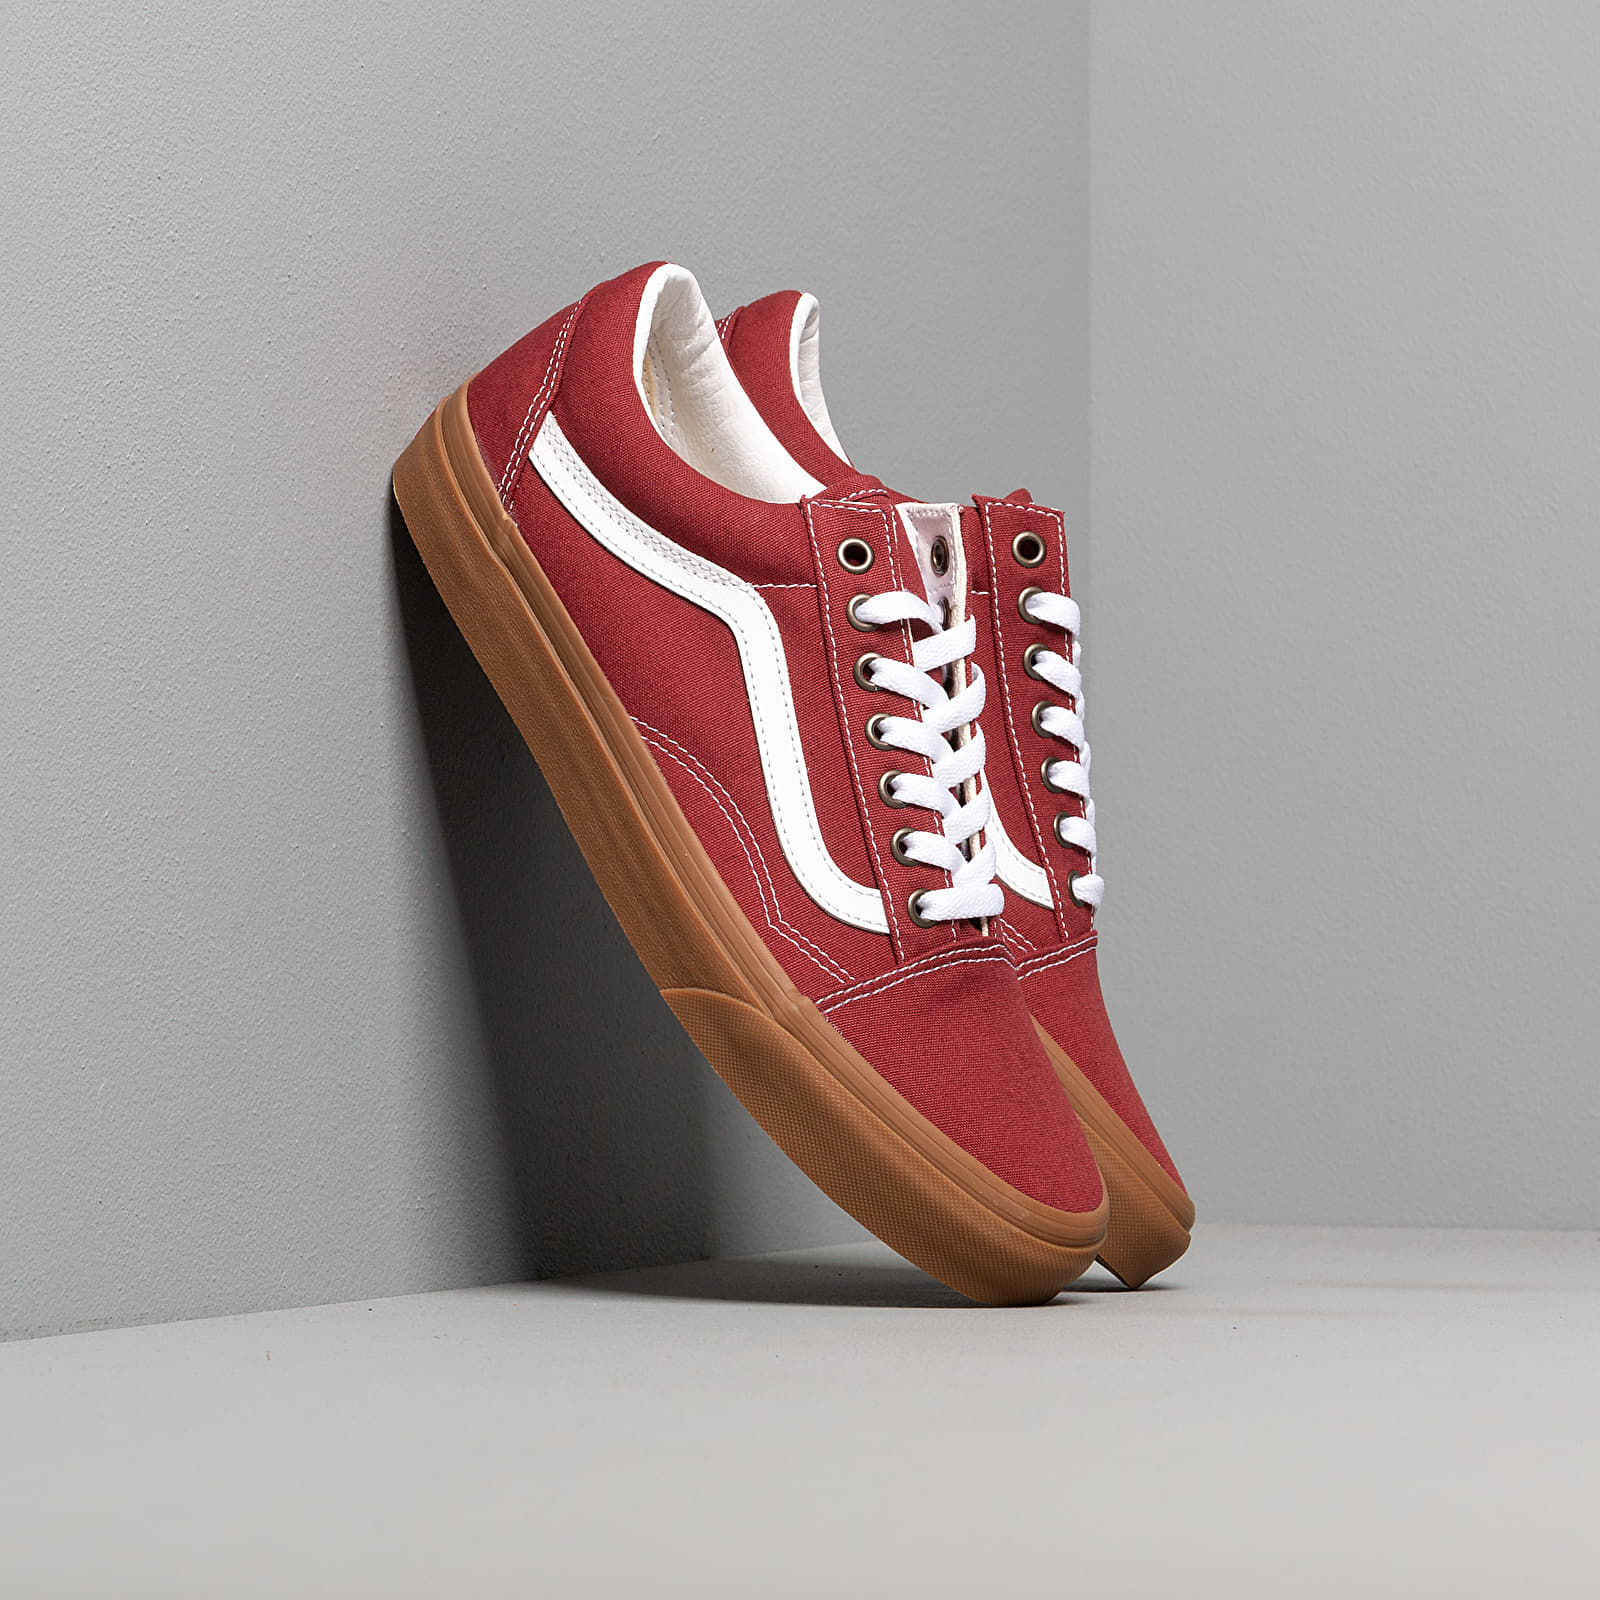 gum old skool vans